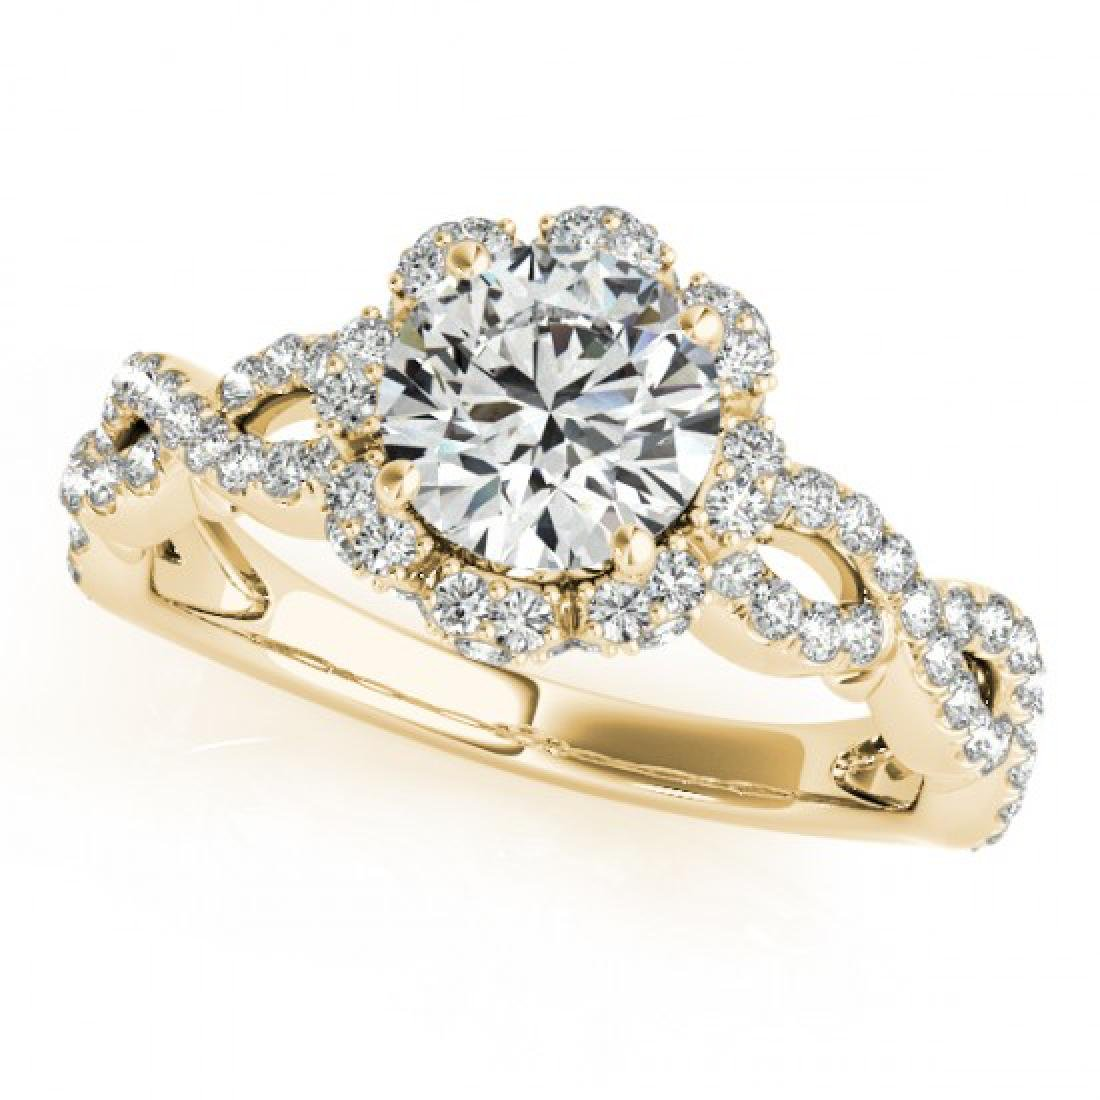 1.69 CTW Certified VS/SI Diamond Solitaire Halo Ring